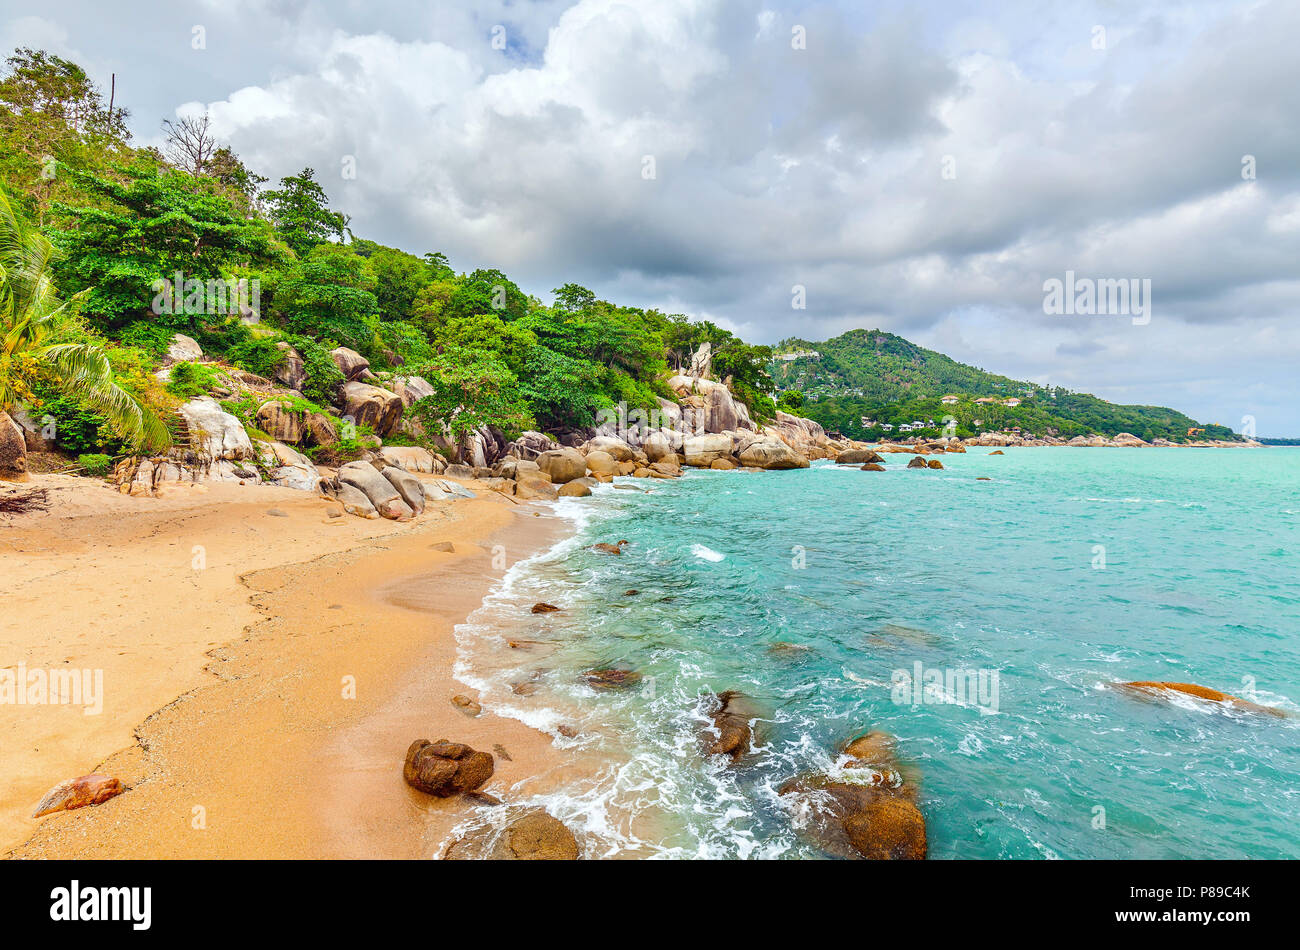 Beautiful beach on the island of Koh Samui in Thailand. Stock Photo